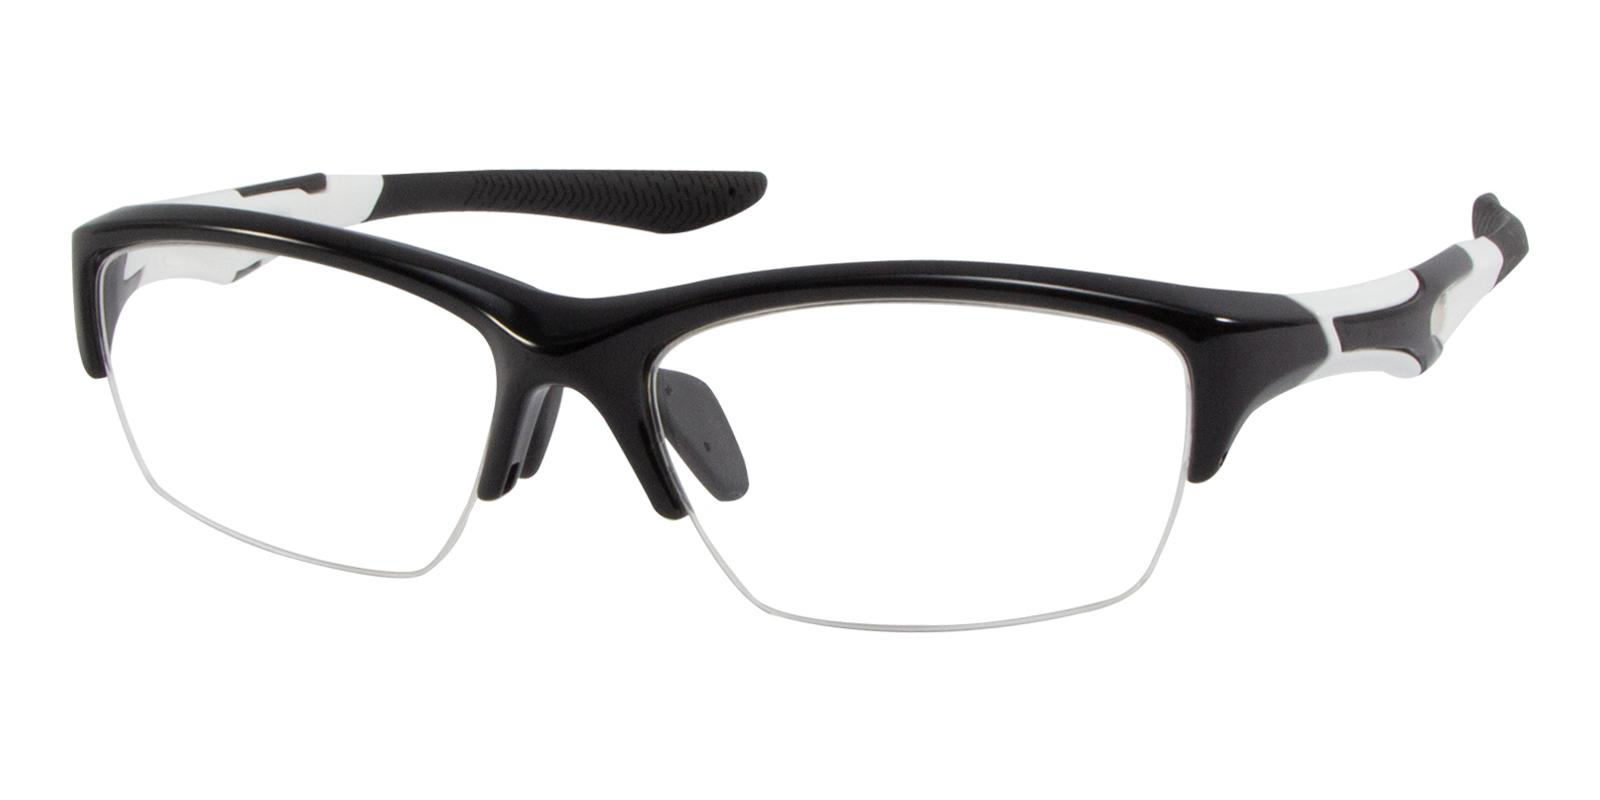 Viking White TR NosePads , SportsGlasses Frames from ABBE Glasses